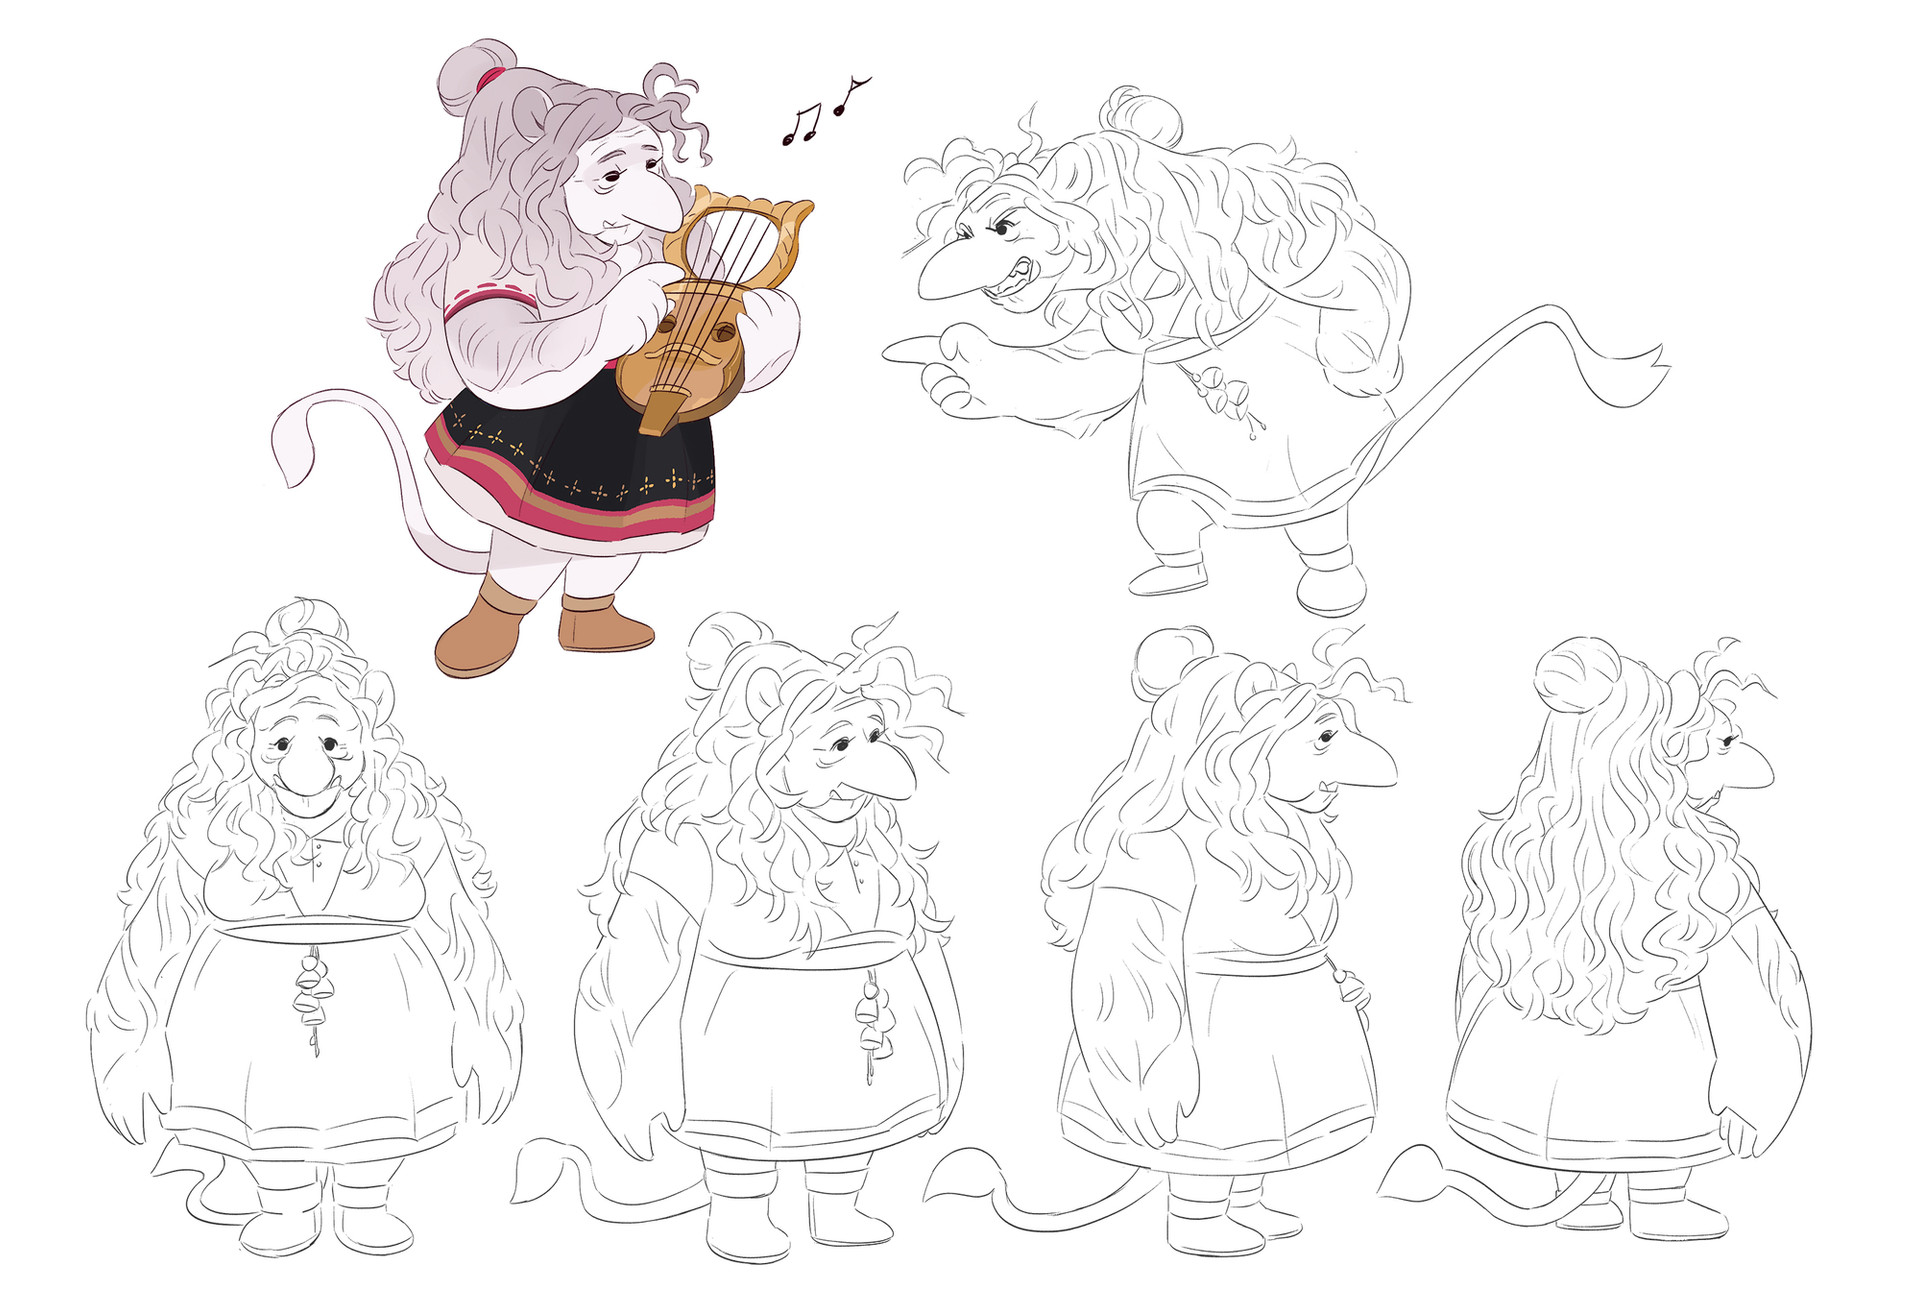 Troll (the giant) Character Sheet